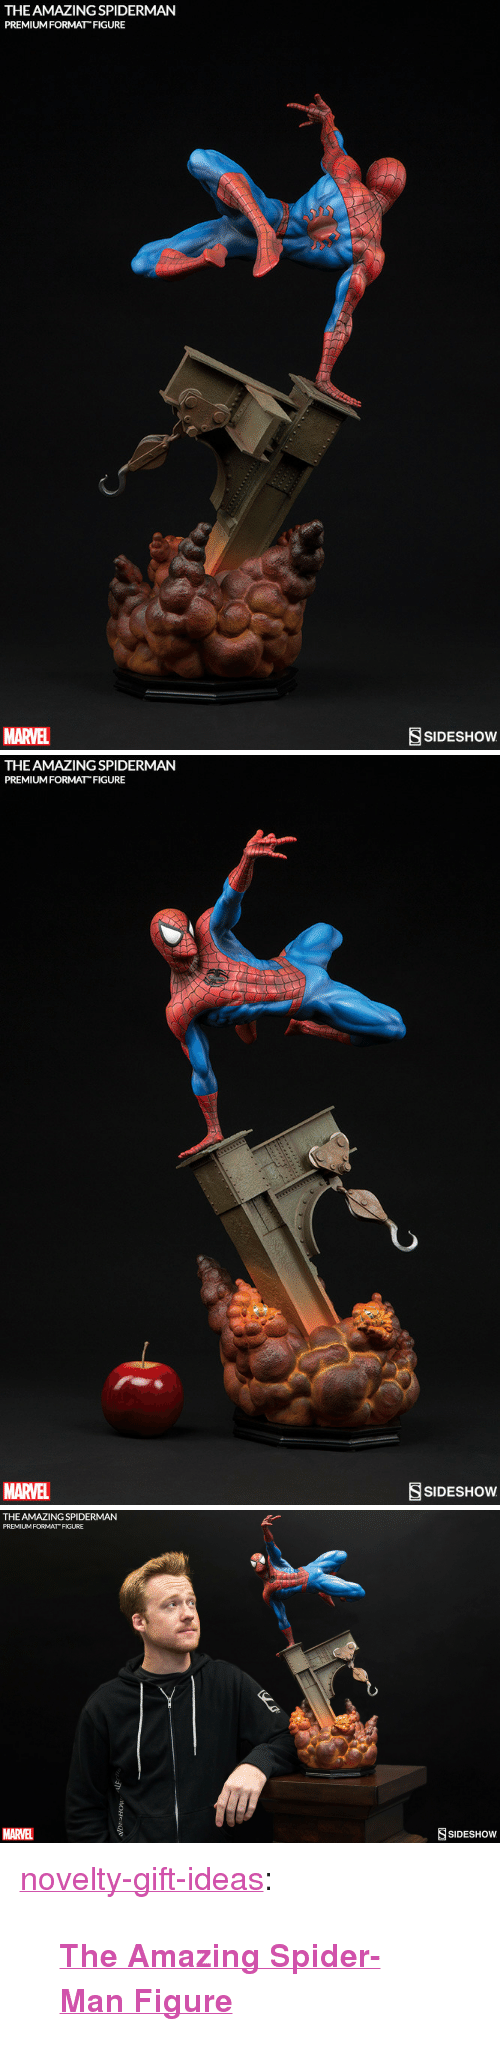 """Spider, SpiderMan, and Tumblr: THE AMAZING SPIDERMAN  PREMIUM FORMAT FIGURE  MARVEL  SSIDESHOw   THE AMAZING SPIDERMAN  PREMIUM FORMAT FIGURE  MARVEL  SSIDESHOw   THE AMAZING SPIDERMAN  PREMIUM FORMAT FIGURE  MARVEL  SIDESHOW <p><a href=""""https://novelty-gift-ideas.tumblr.com/post/163104754973/the-amazing-spider-man-figure"""" class=""""tumblr_blog"""">novelty-gift-ideas</a>:</p><blockquote><p><b><a href=""""https://novelty-gift-ideas.com/amazing-spider-man-figure/"""">  The Amazing Spider-Man Figure</a></b><br/></p></blockquote>"""